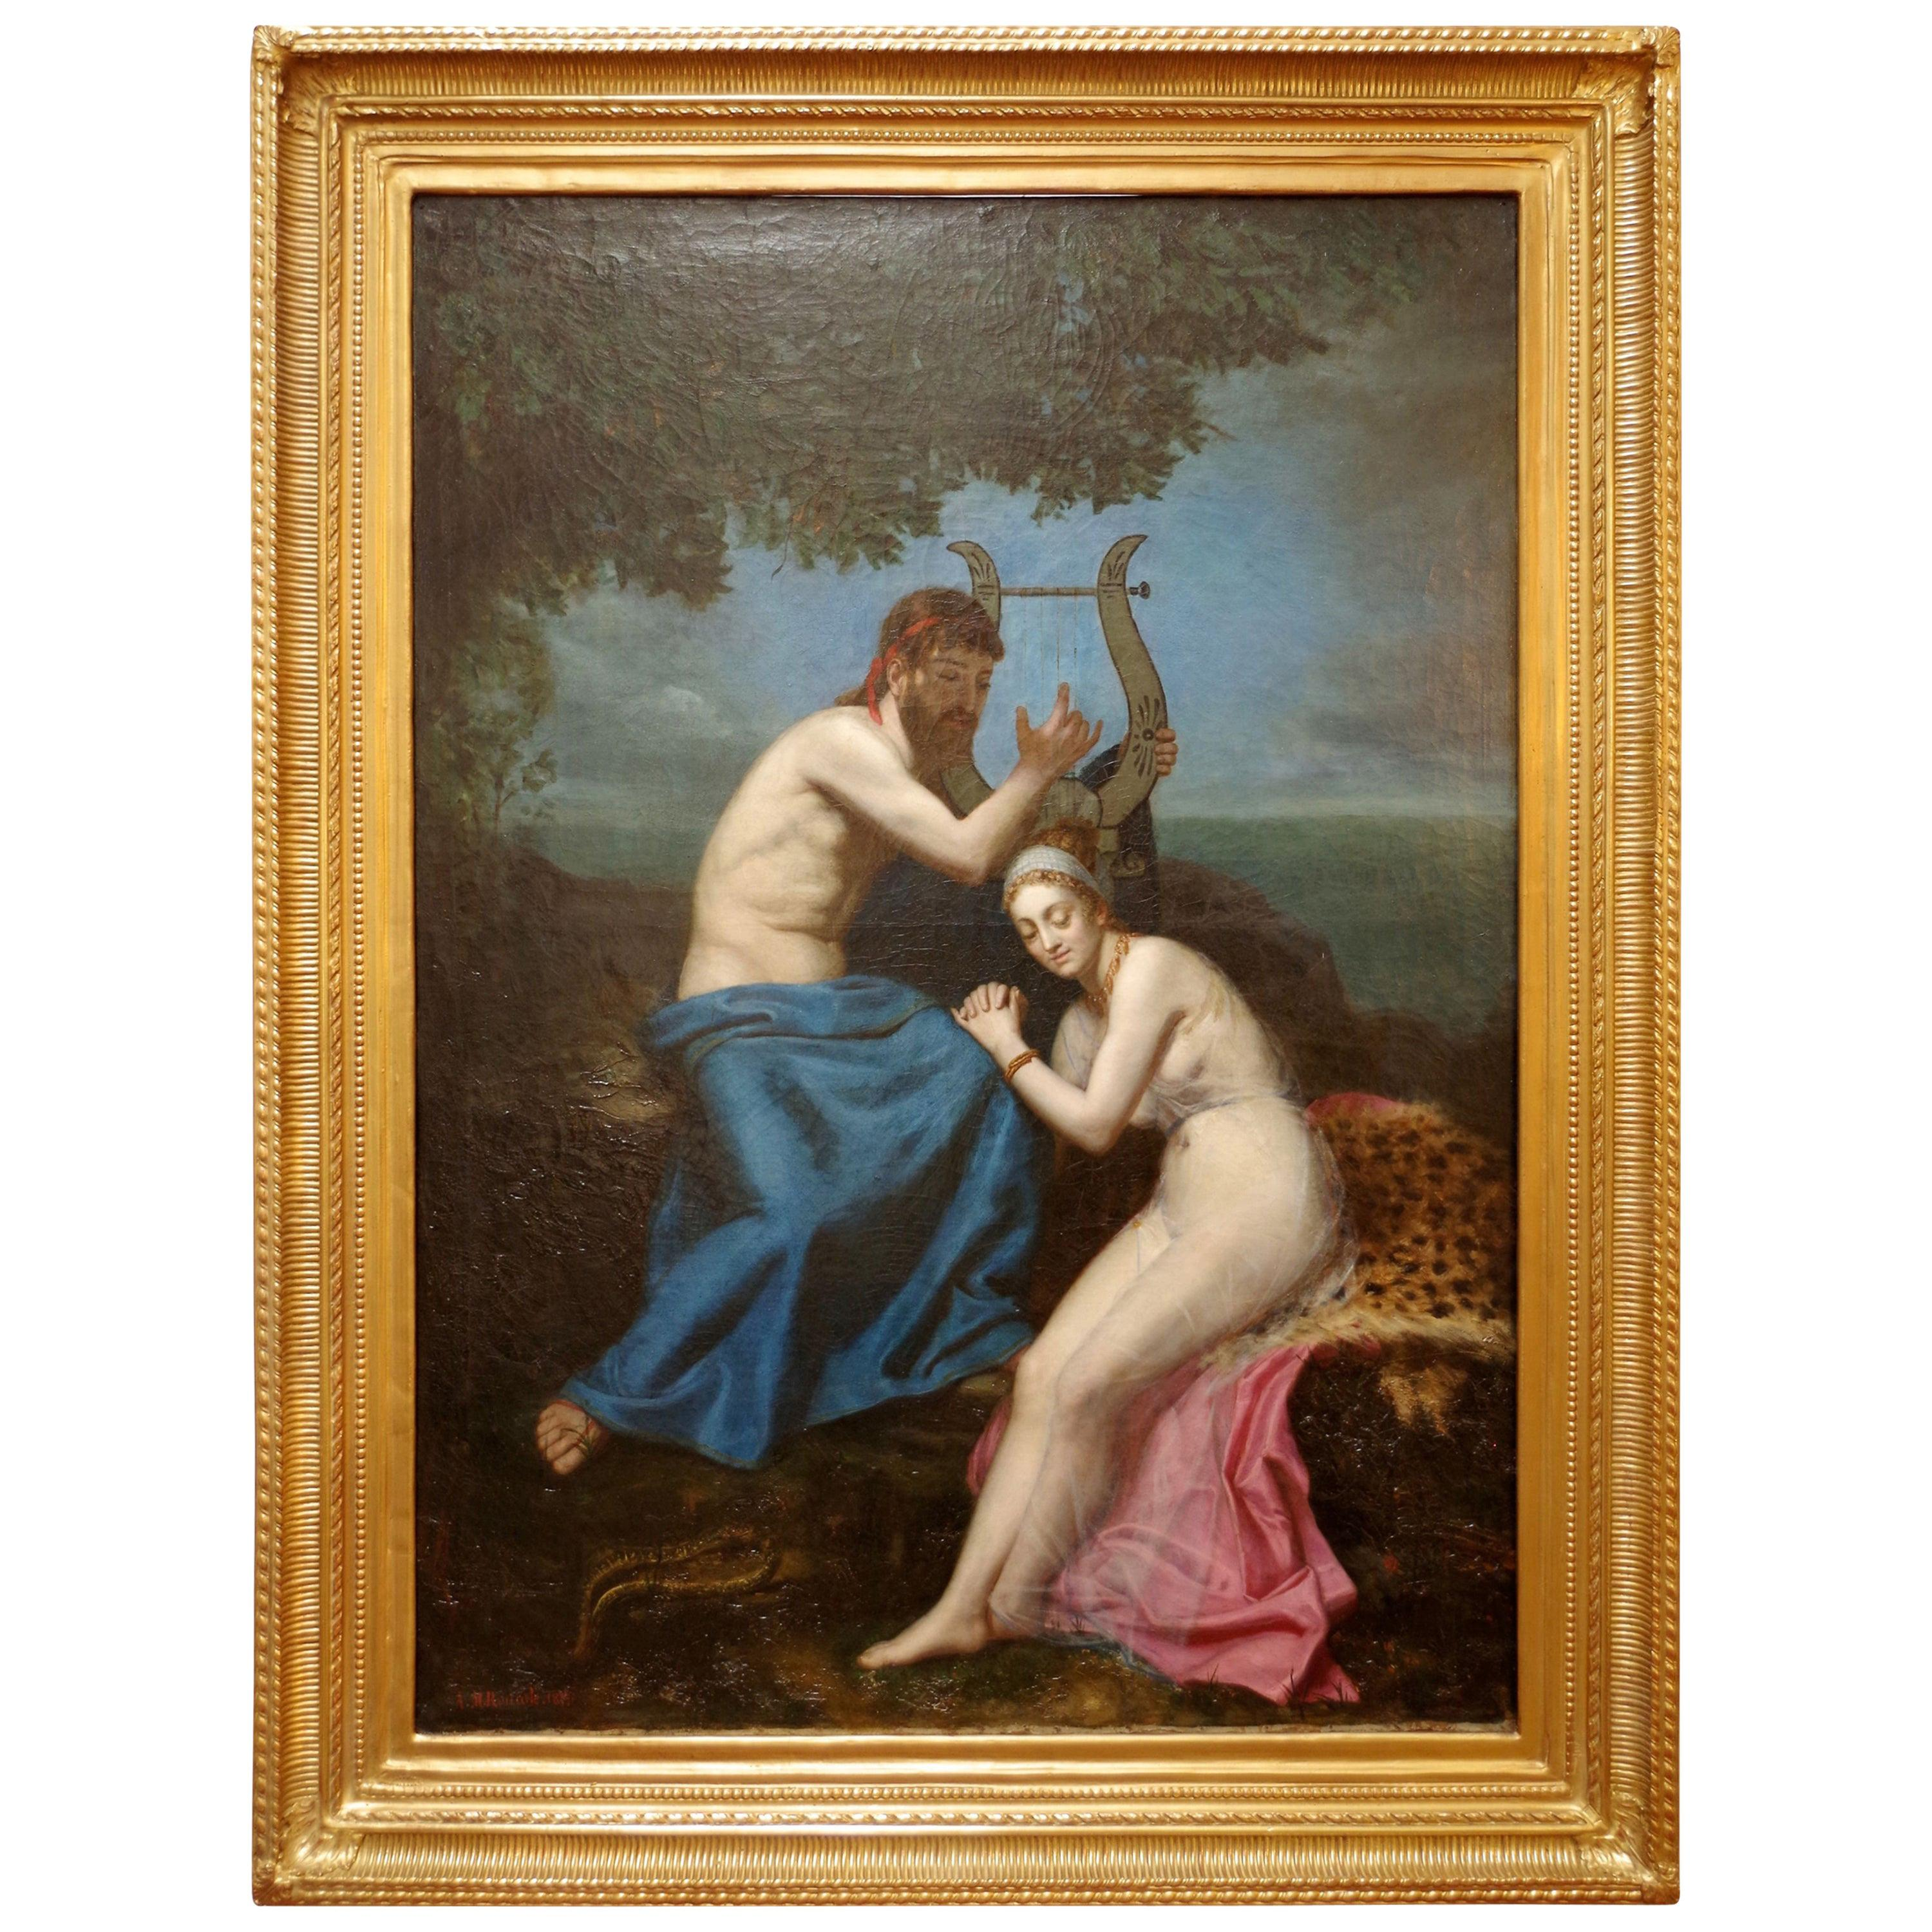 """A.M. Roucoule, """"Orpheus and Eurydice"""", Oil on Canvas, 1877"""